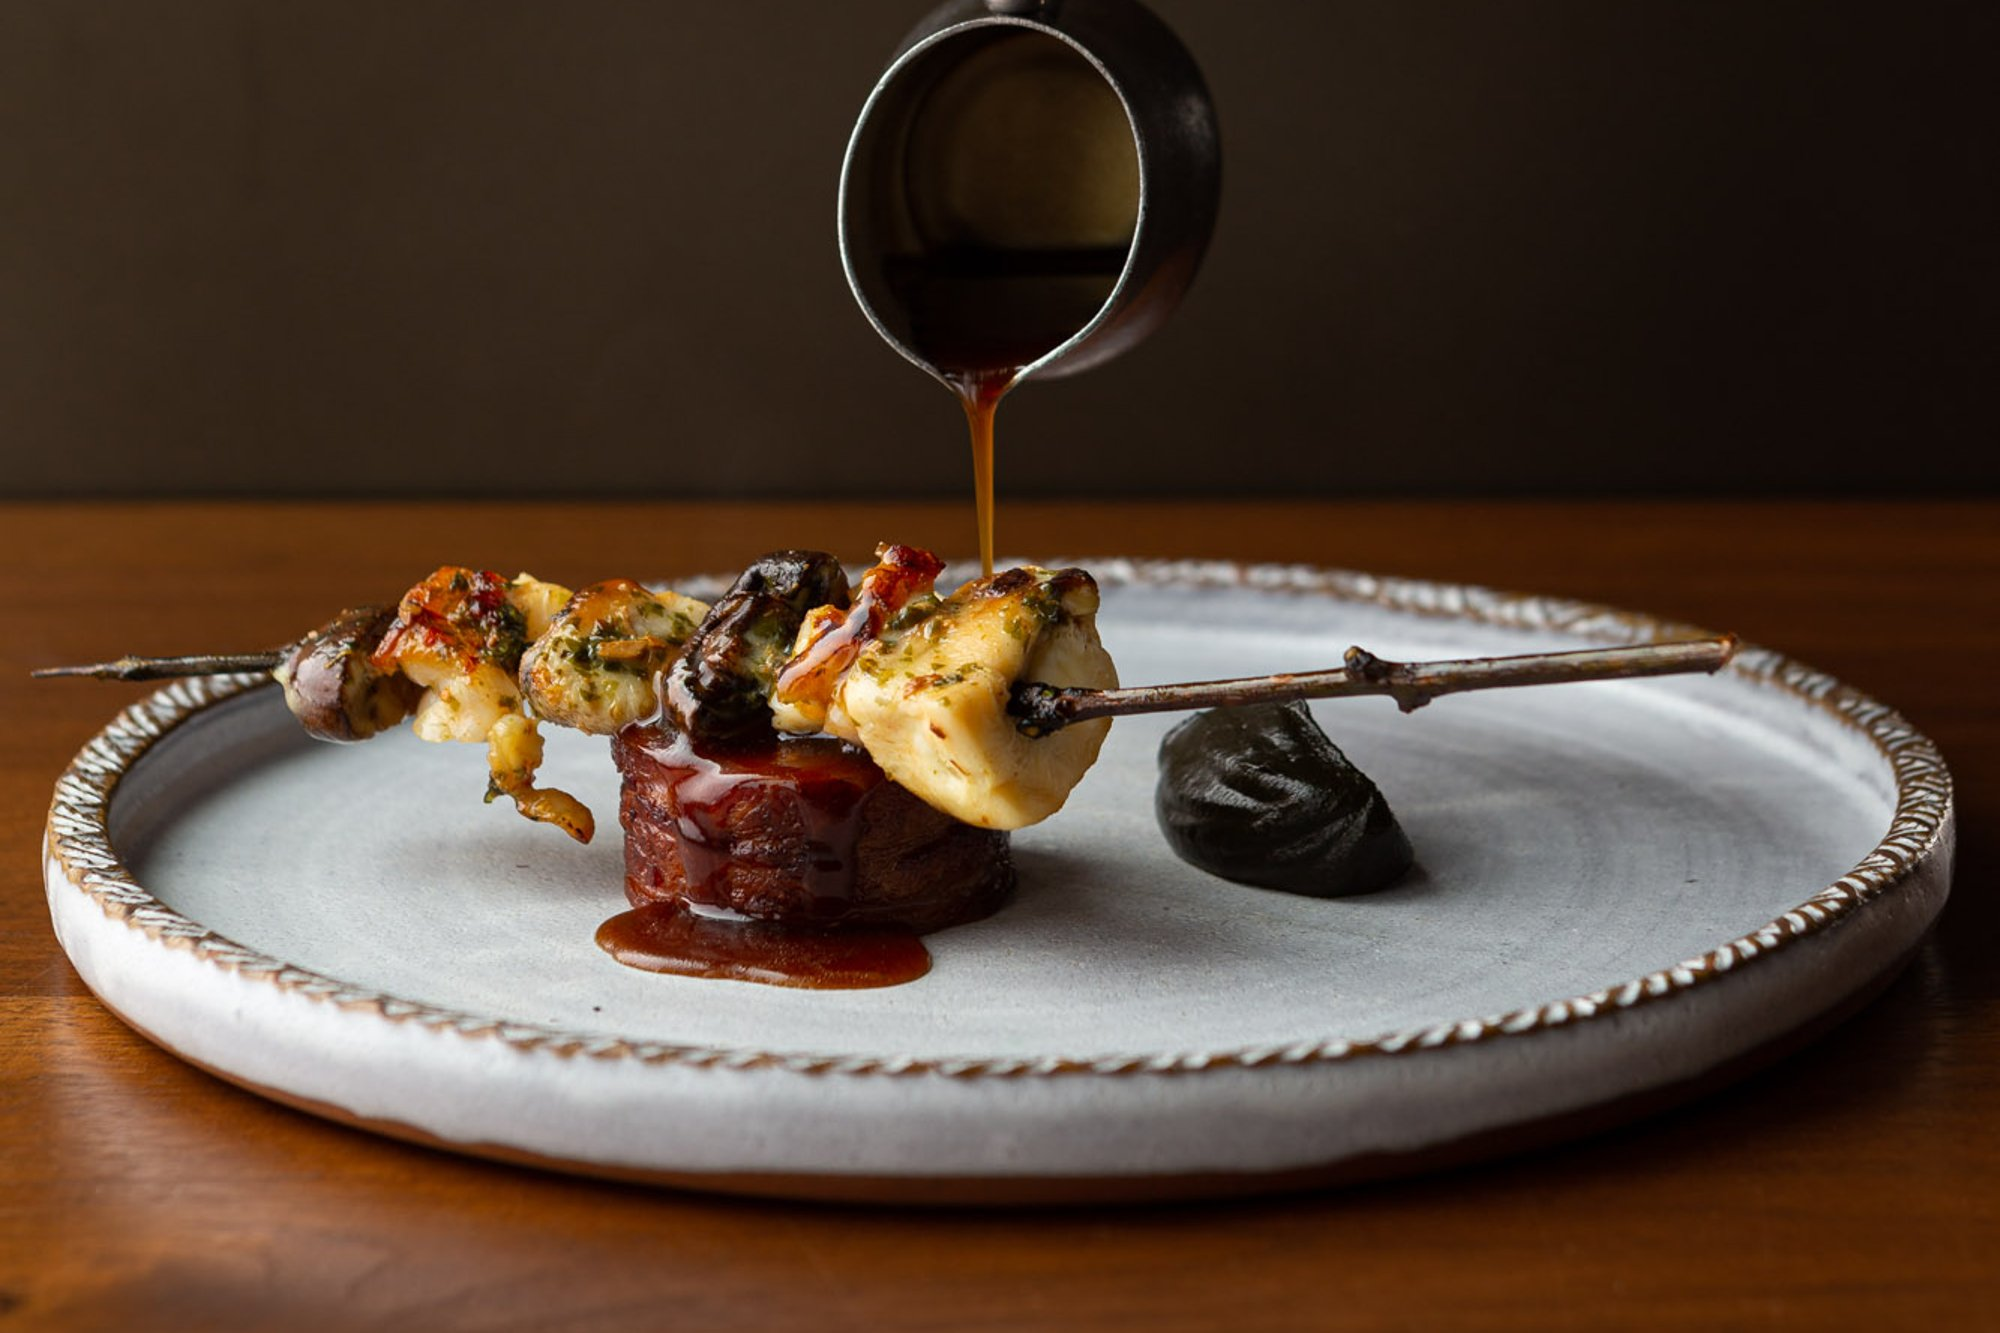 Canoe Restaurant tasting menu dish - surf and turf with jus pour